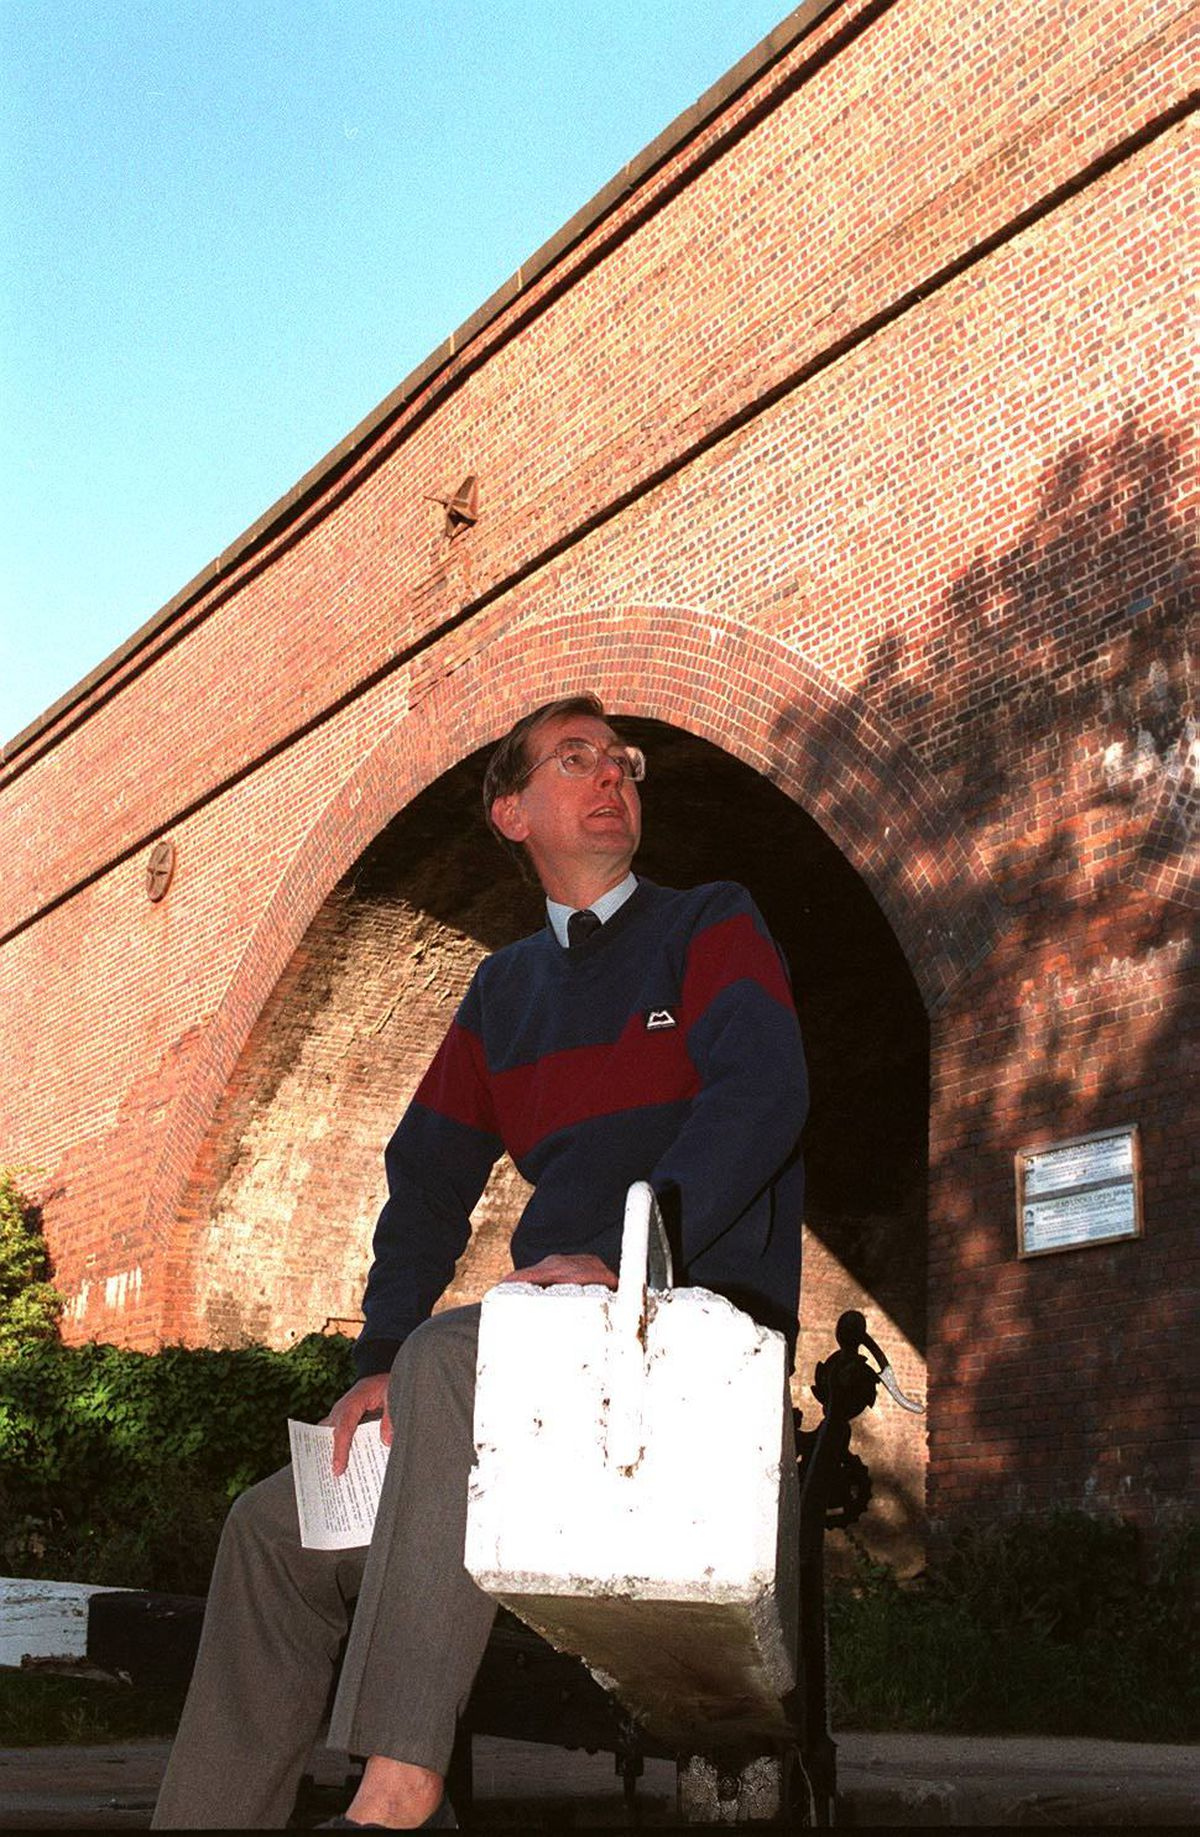 Tim Weller has been campaigning to reopen the railway line from Lichfield to Stourbridge since the 1990s